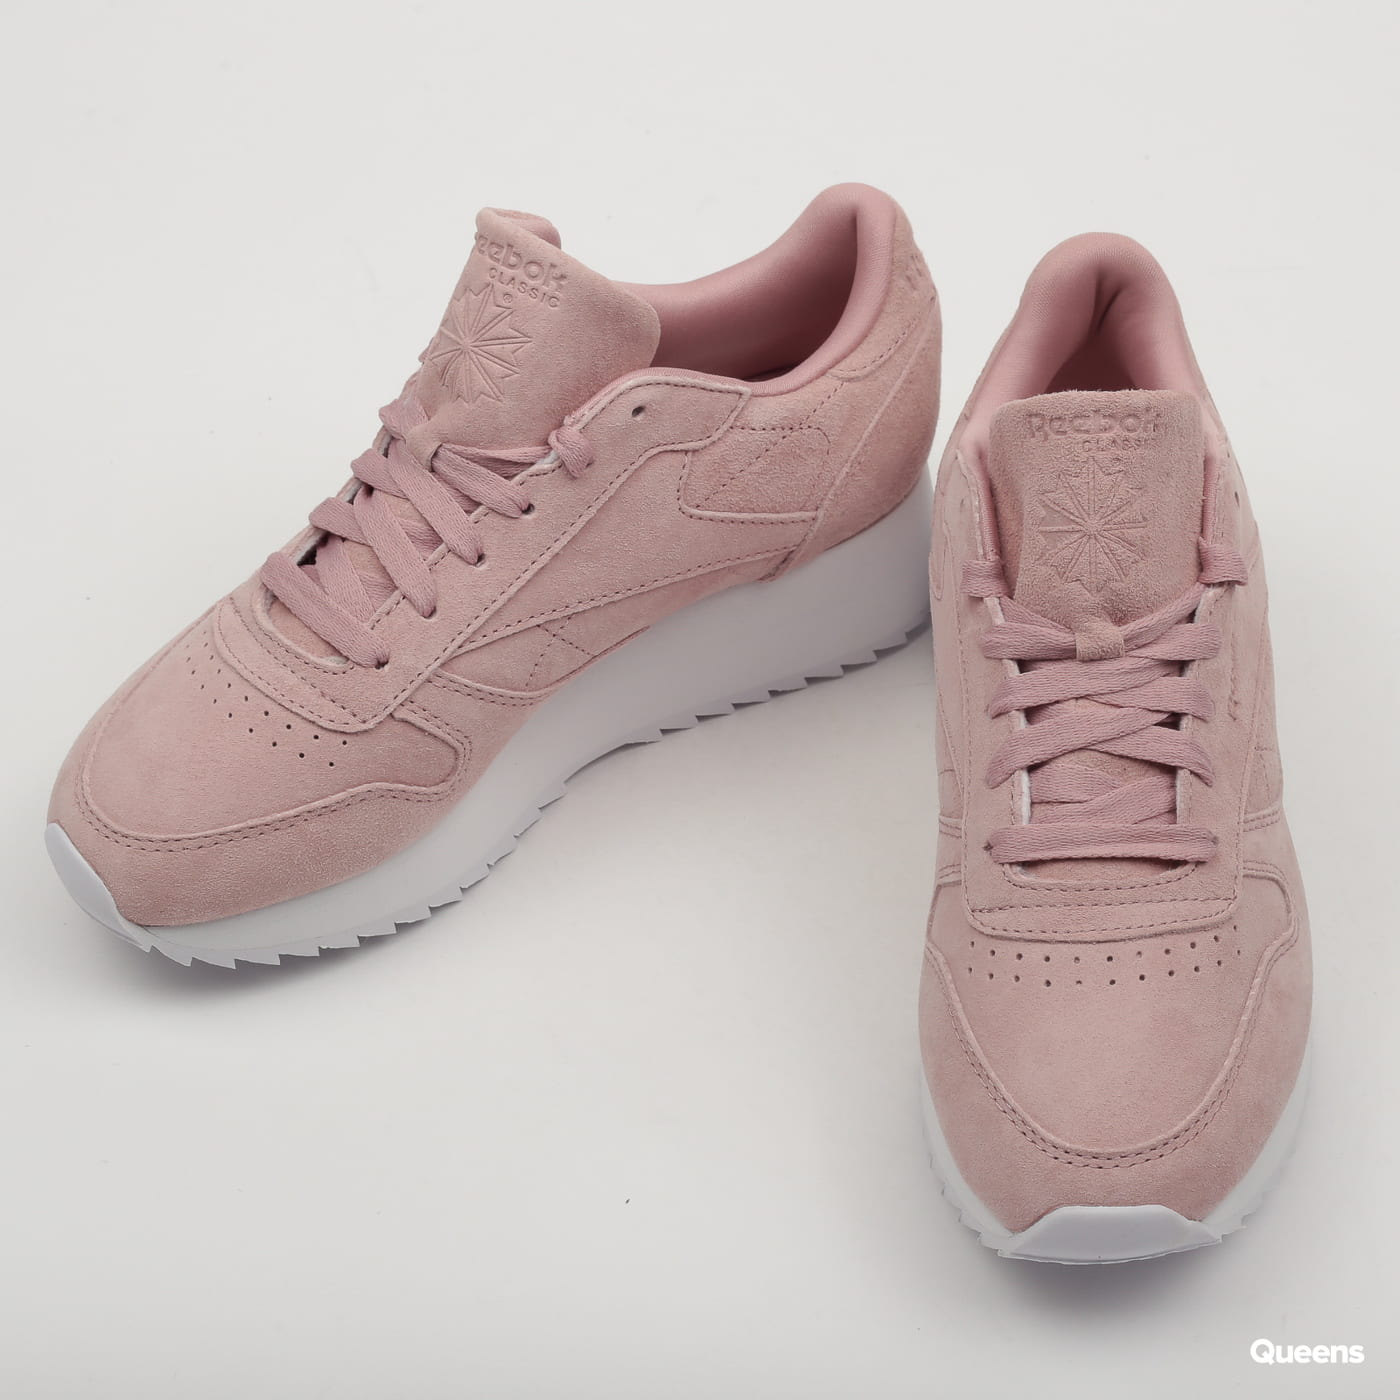 b0a5a71aefced Zoom in Zoom in Zoom in Zoom in Zoom in. Reebok Classic Leather Double  smoky rose   white